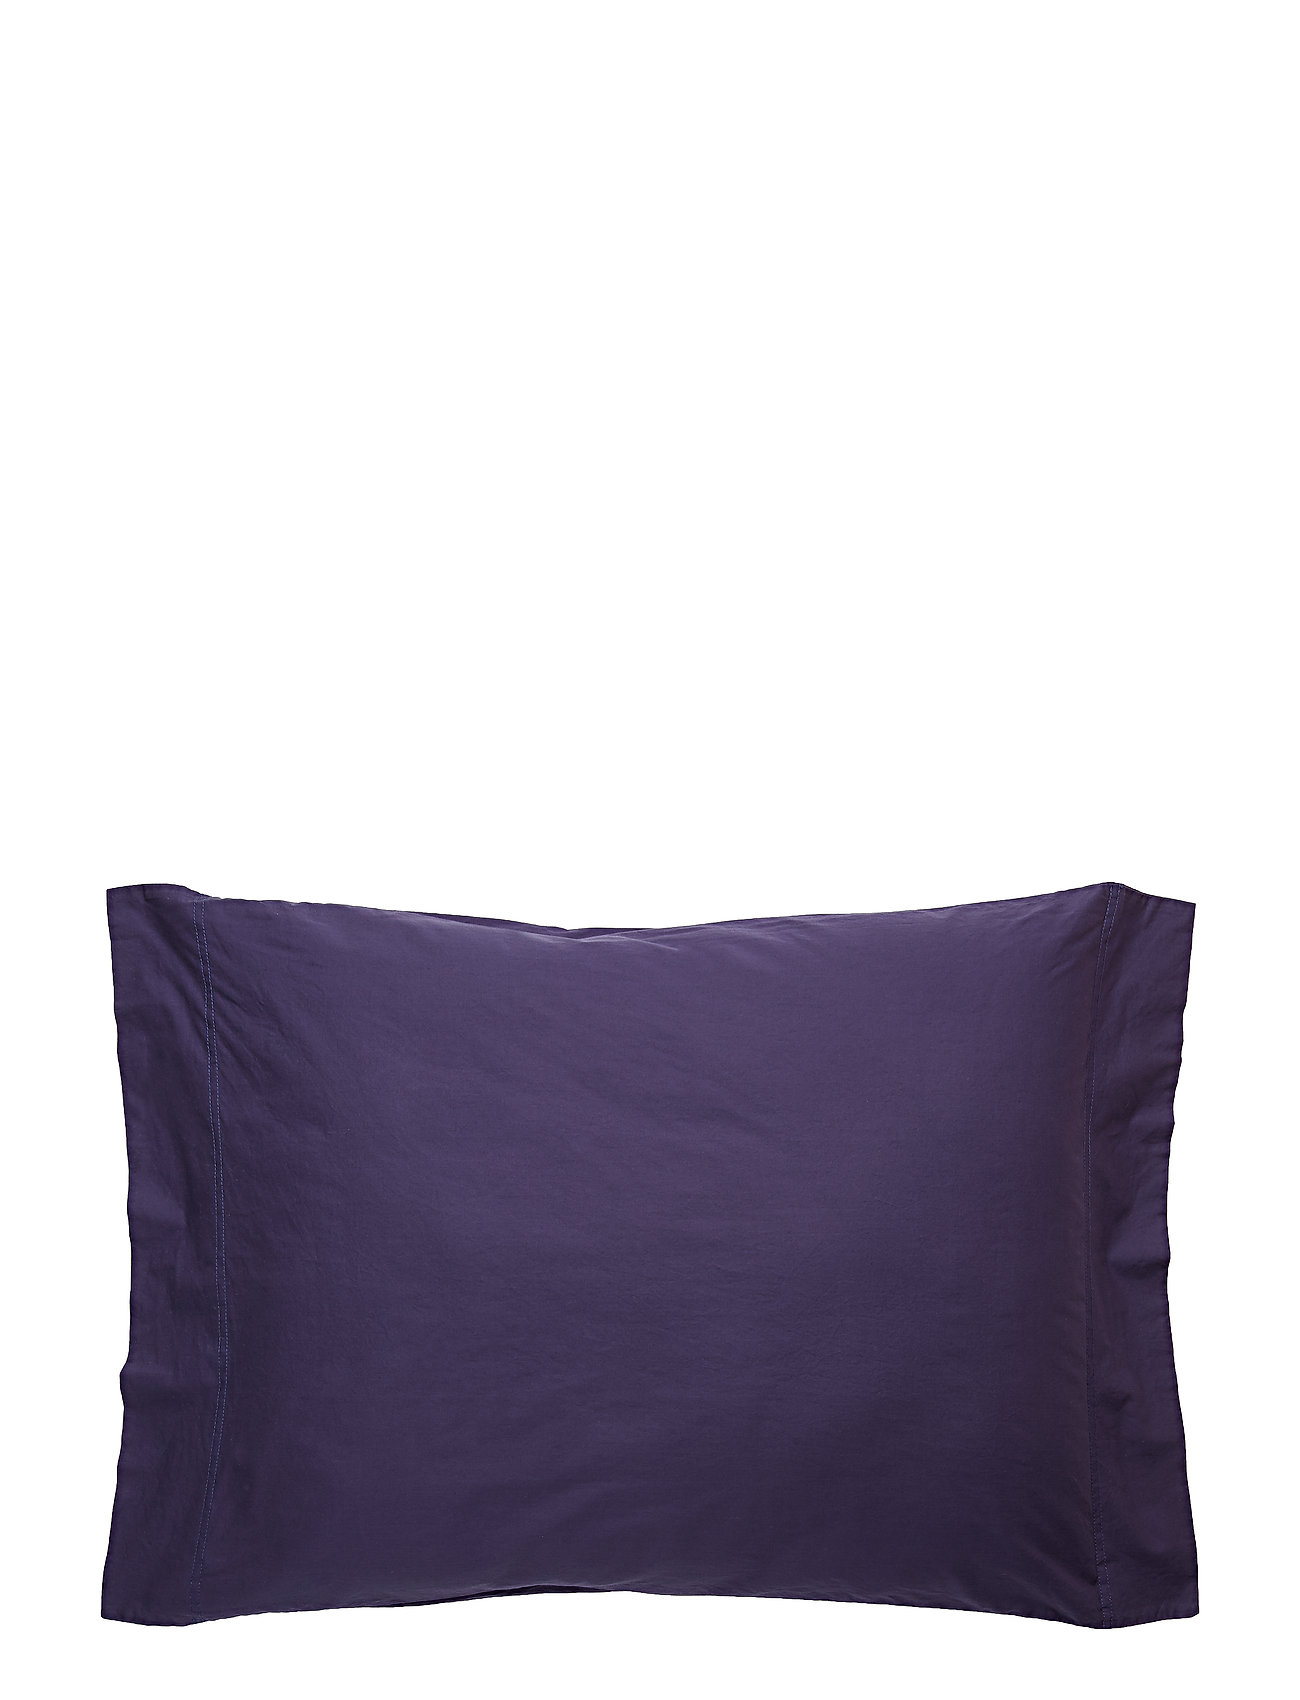 X Linen BlueDirty Pillowcasetrue Triple Head 54Lj3AR